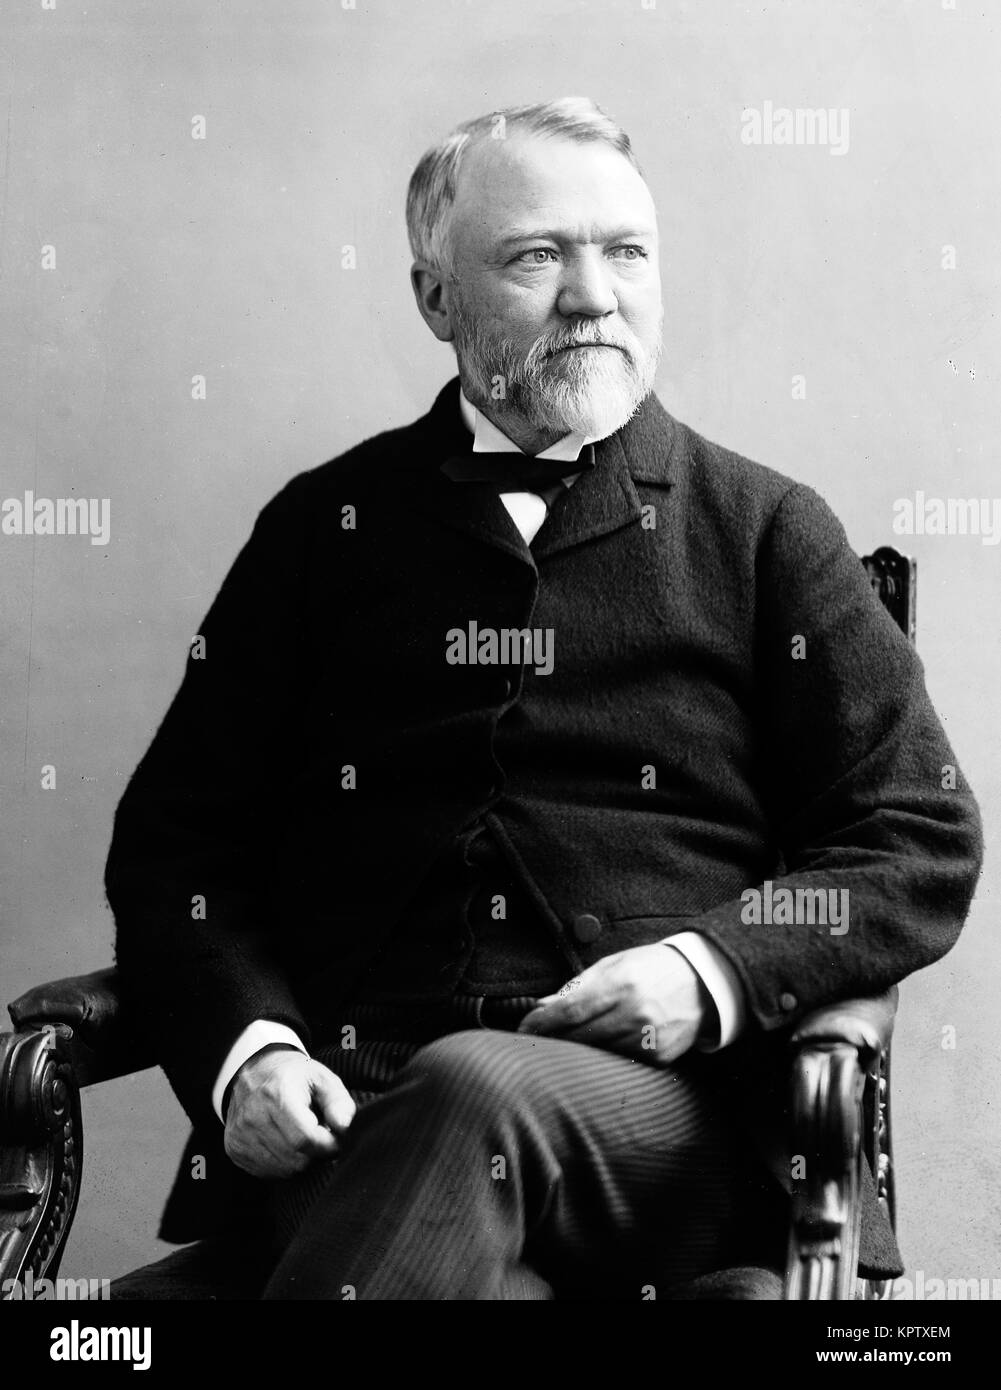 Andrew Carnegie, Scottish-American industrialist and business magnate - Stock Image